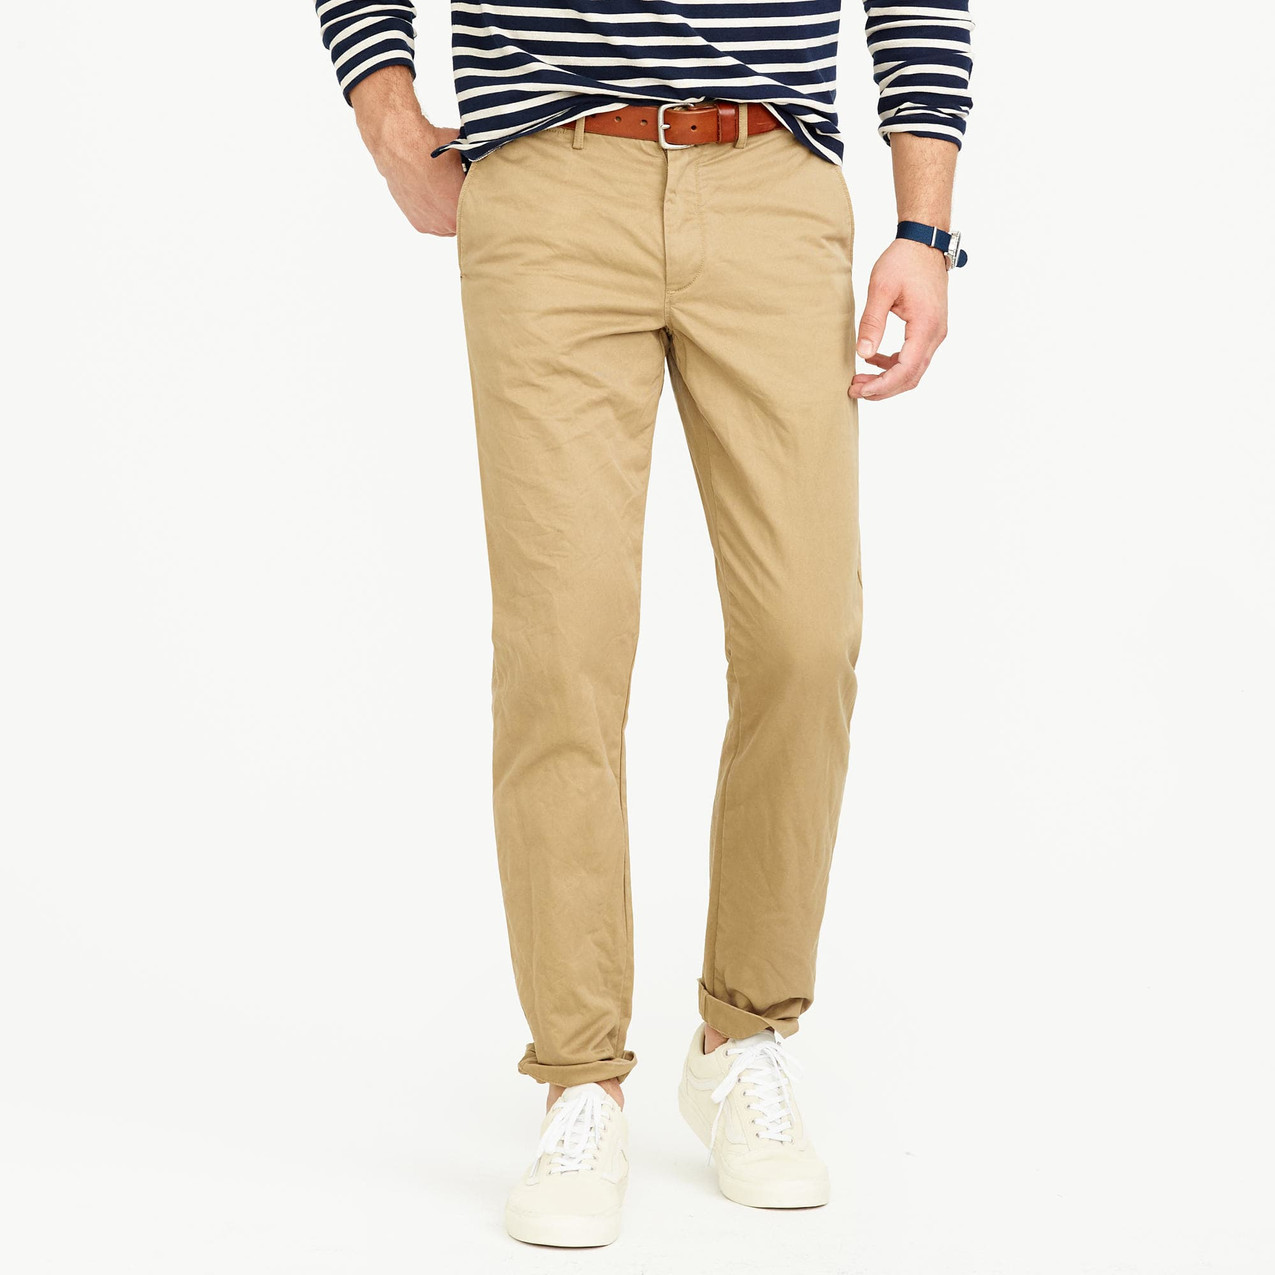 https://www.jcrew.com/p/19488?color_